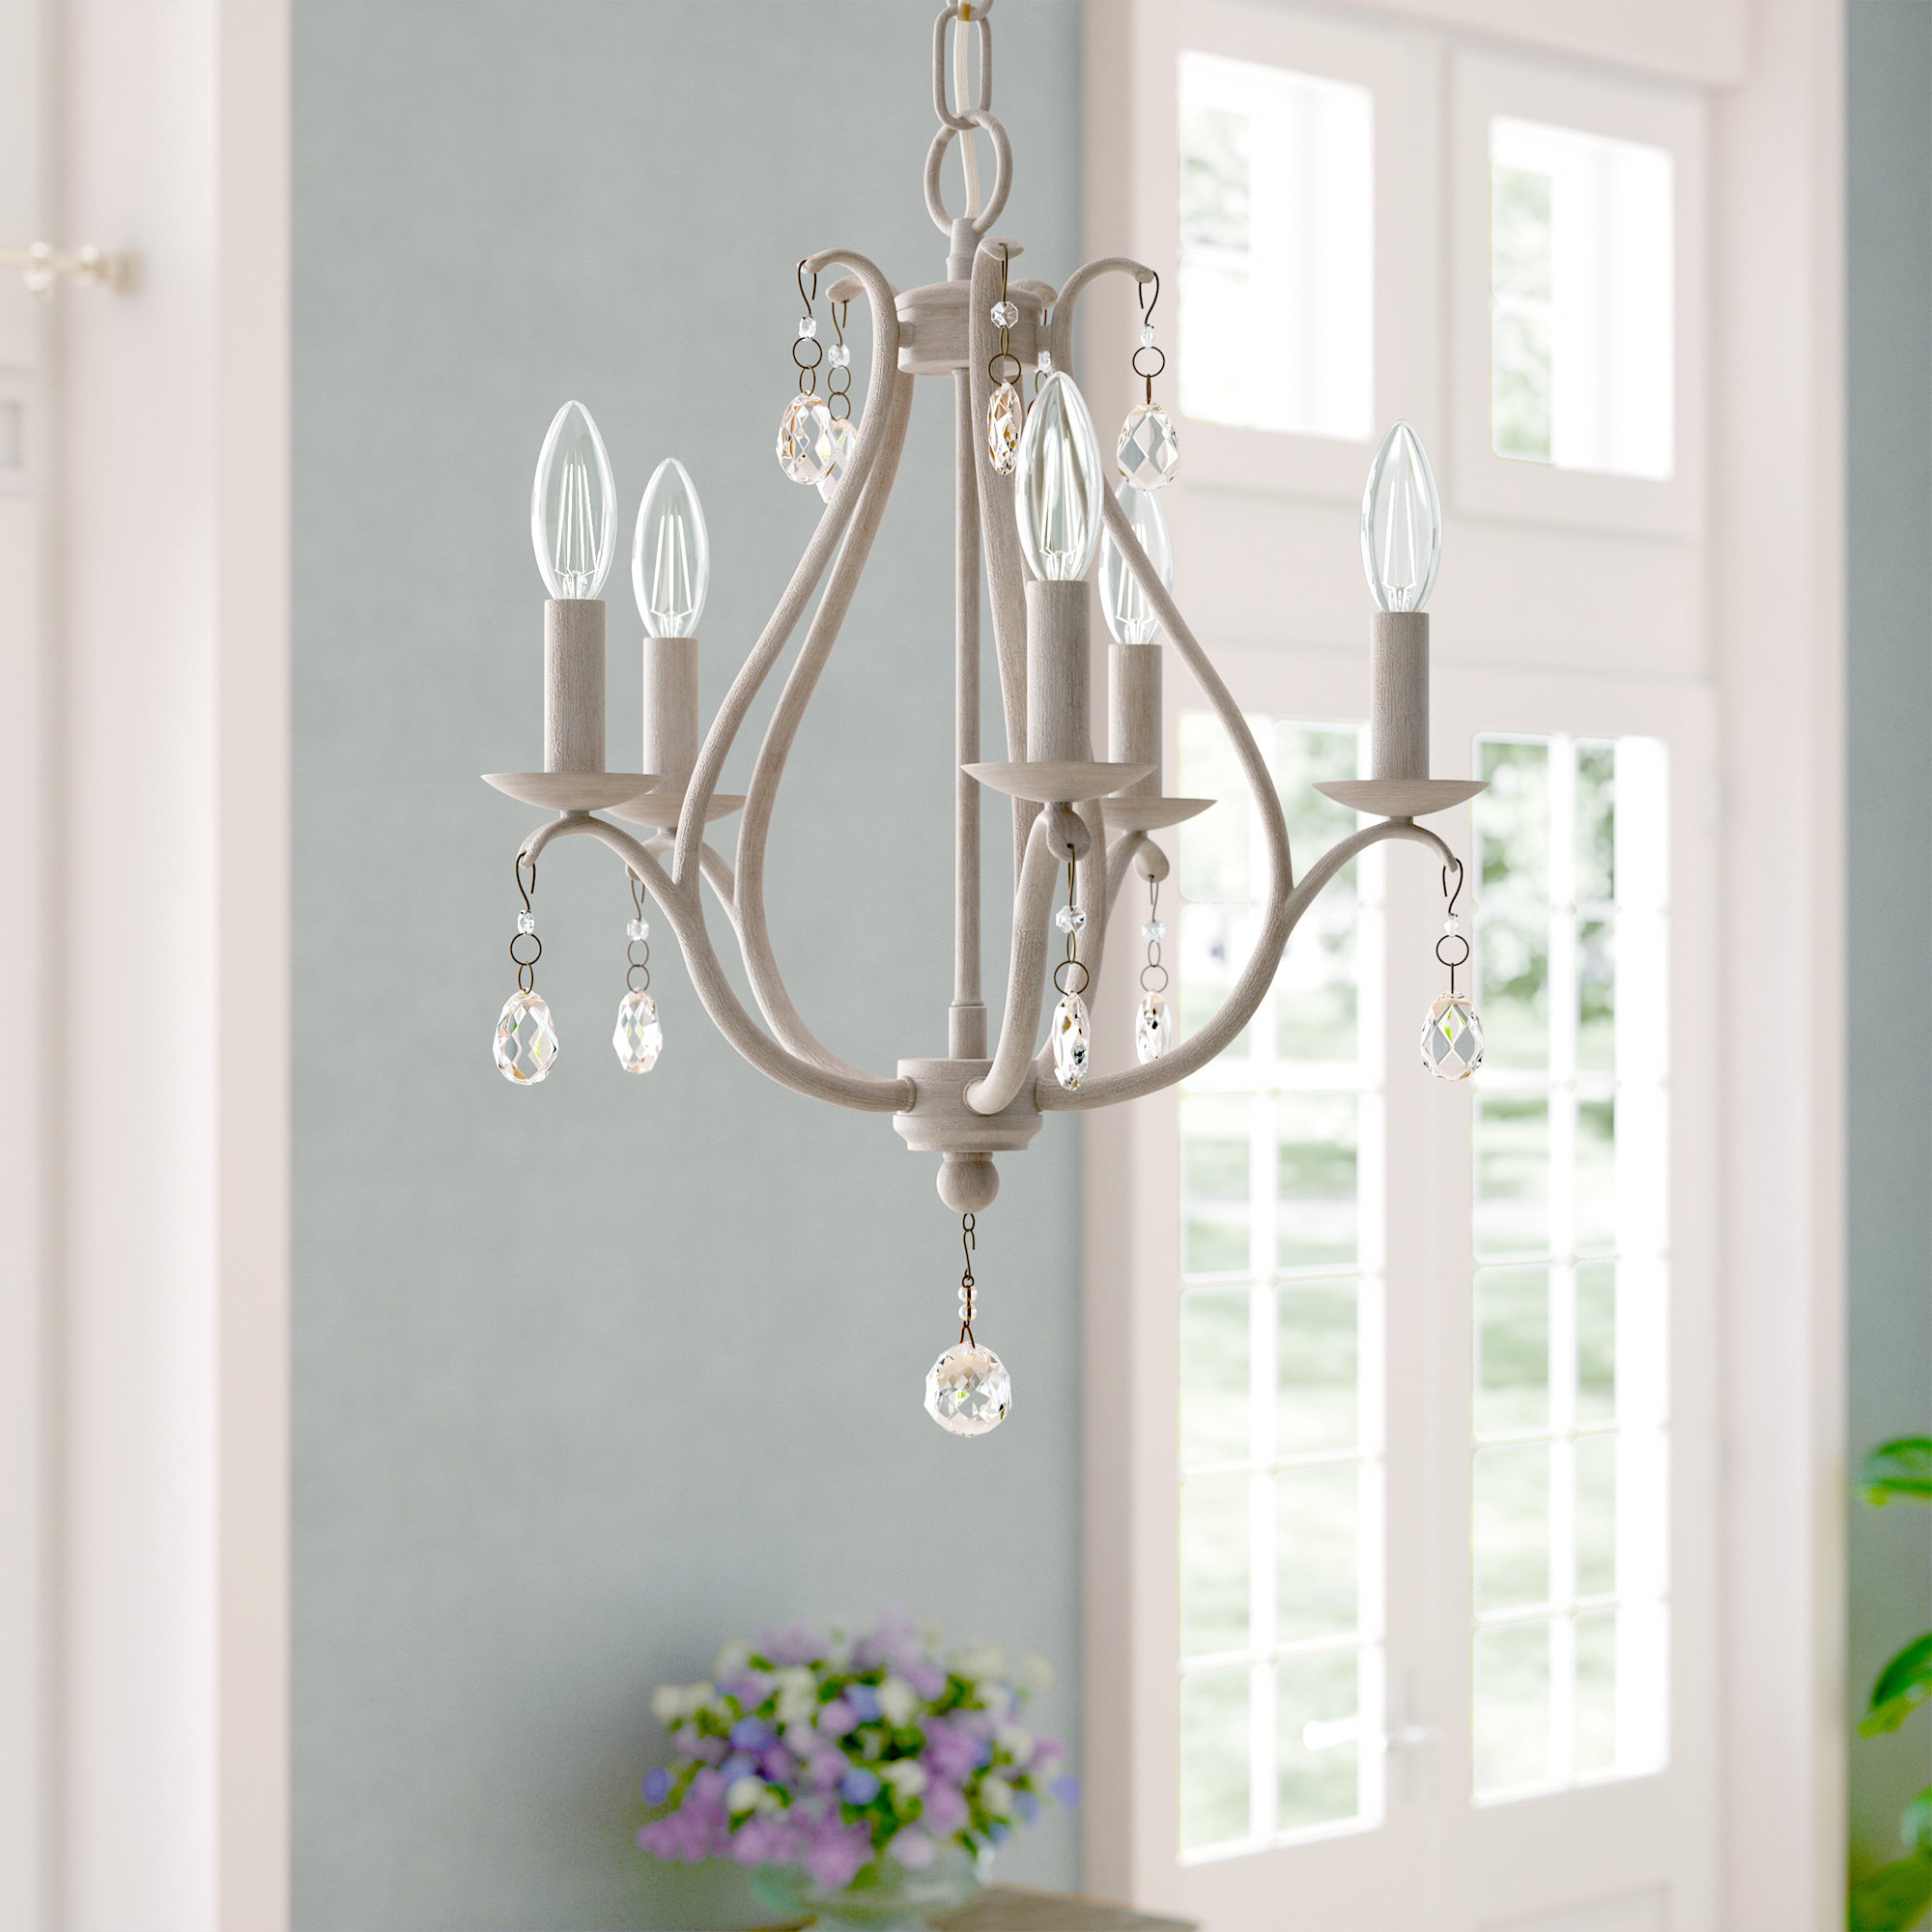 Most Recently Released Blanchette 5 Light Candle Style Chandeliers Intended For Palumbo 5 Light Candle Style Chandelier (View 7 of 20)